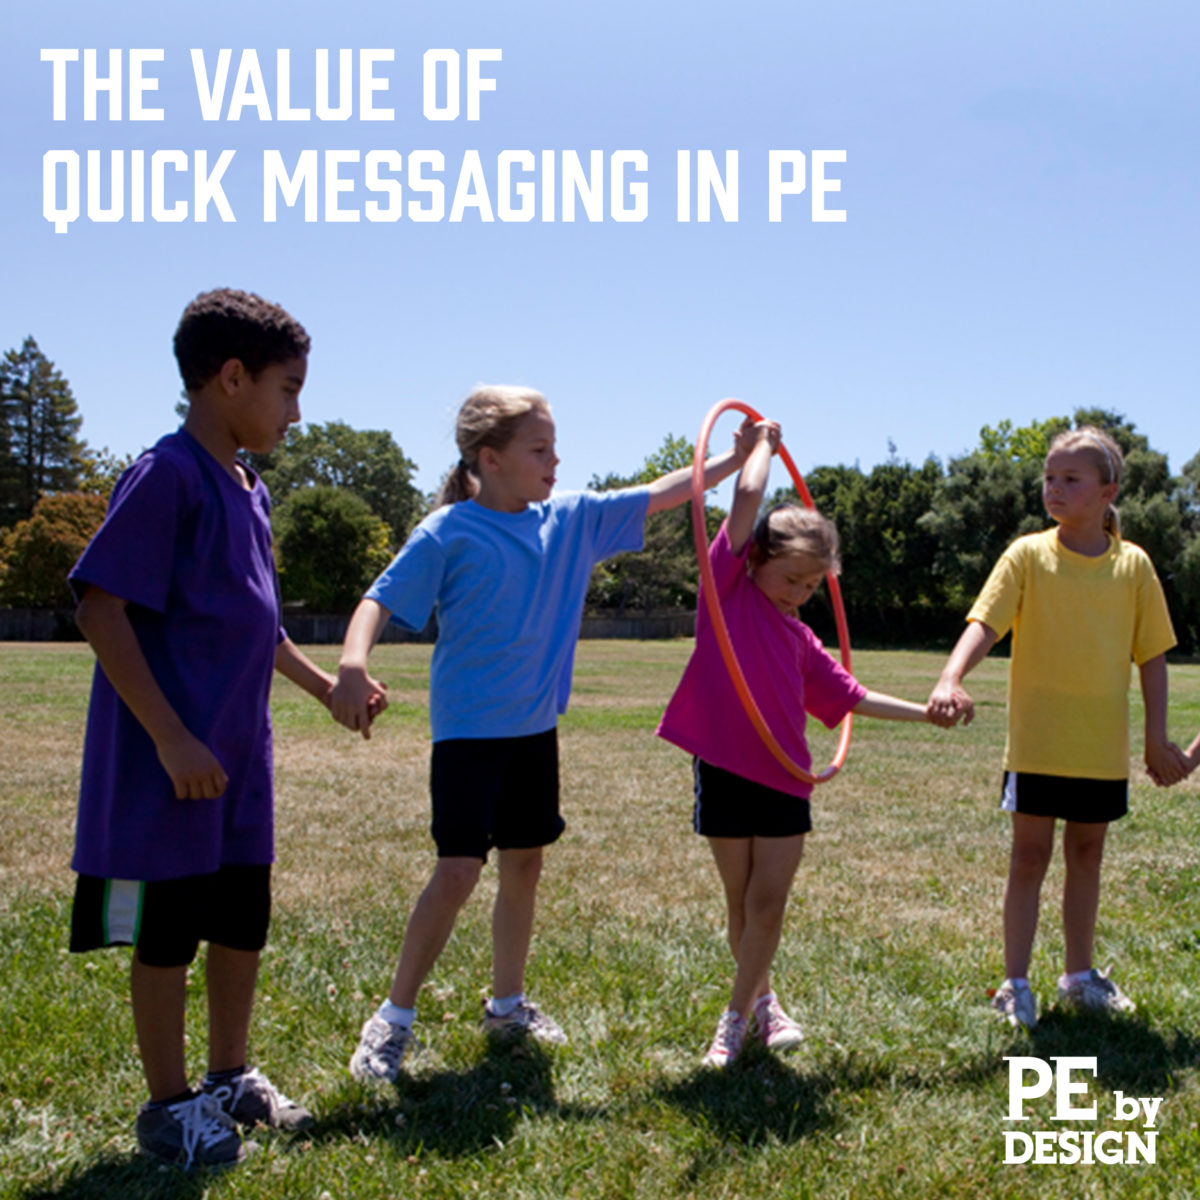 The Value of Quick Messaging in PE